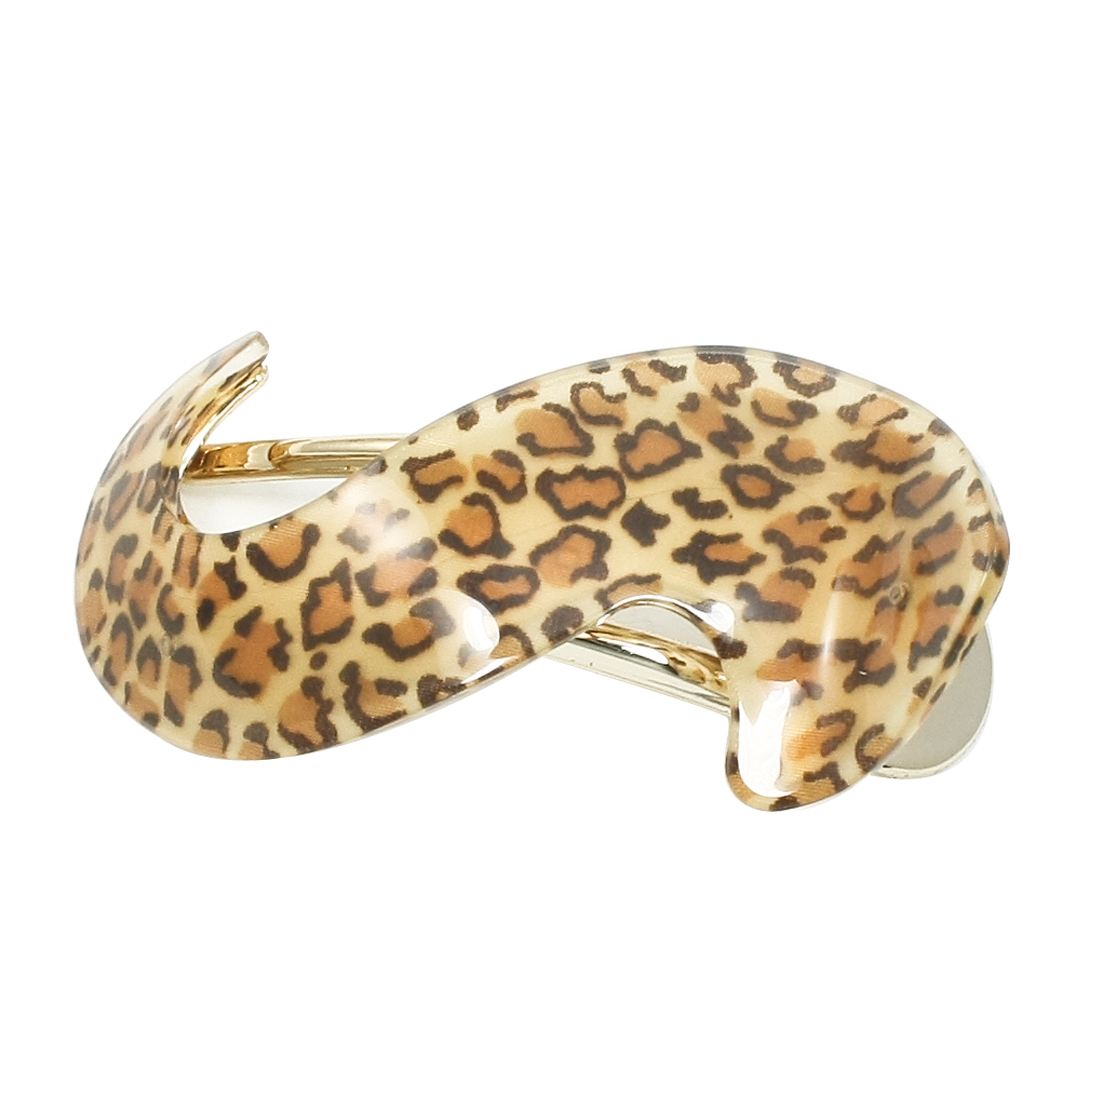 Brown Leopard Print S Shaped Alligator Hair Clip for Lady